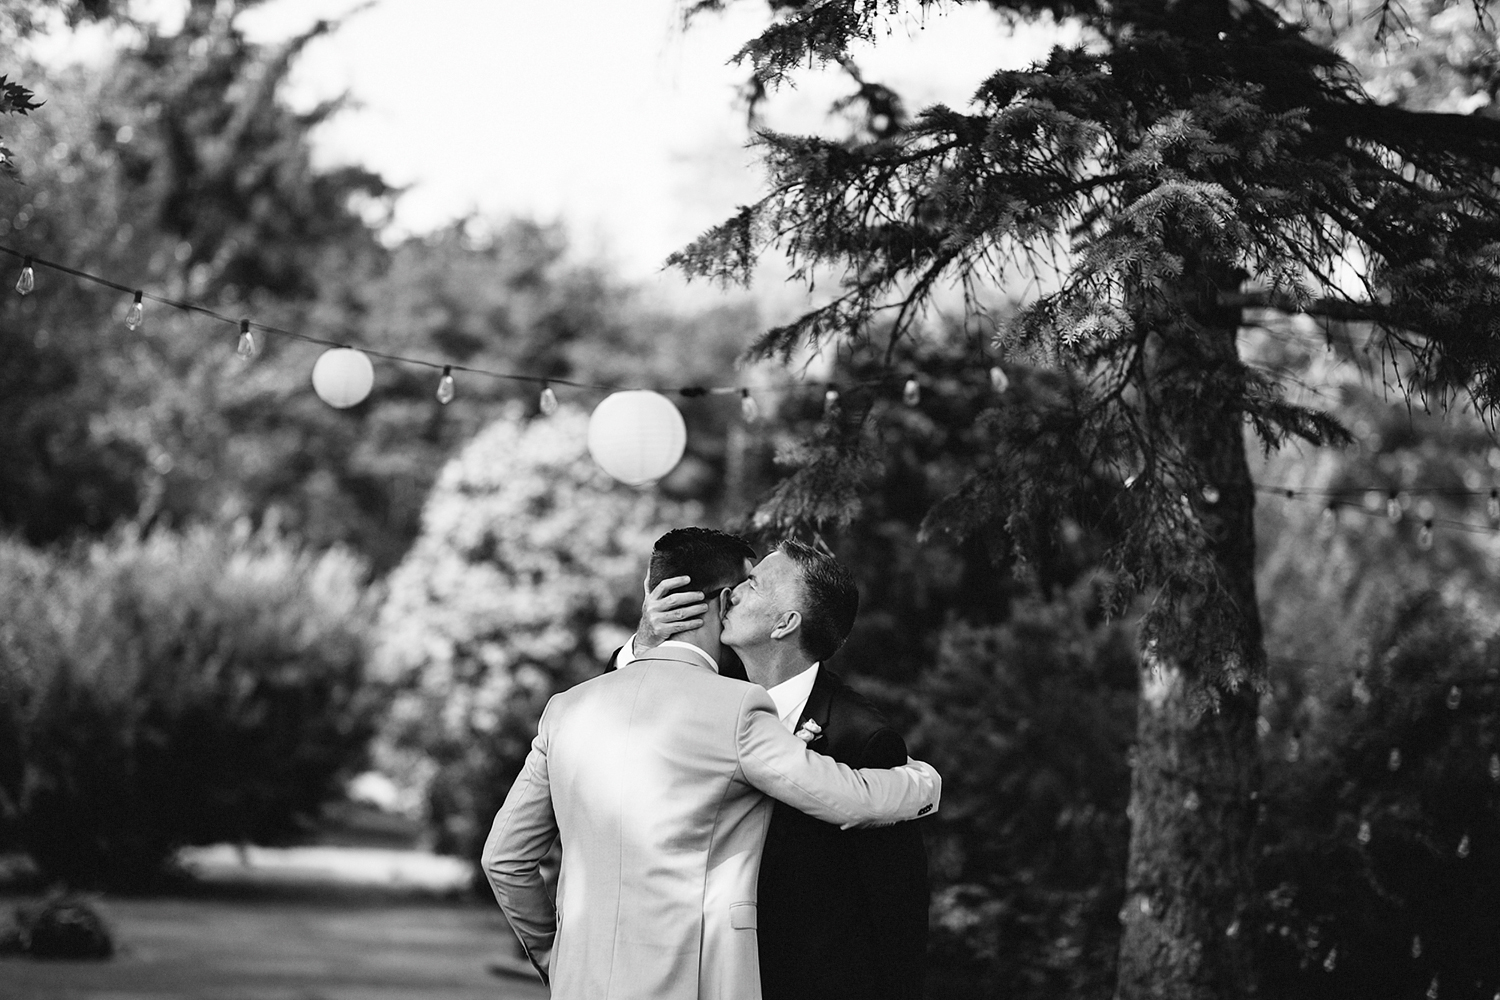 Backyard-family-intimate-cottage-wedding-chatum-kent-toronto-ontario-film-photographer-ryanne-hollies-photography-diy-documentary-photojournalistic-candid-moments-groom-and-dad-hugging.jpg